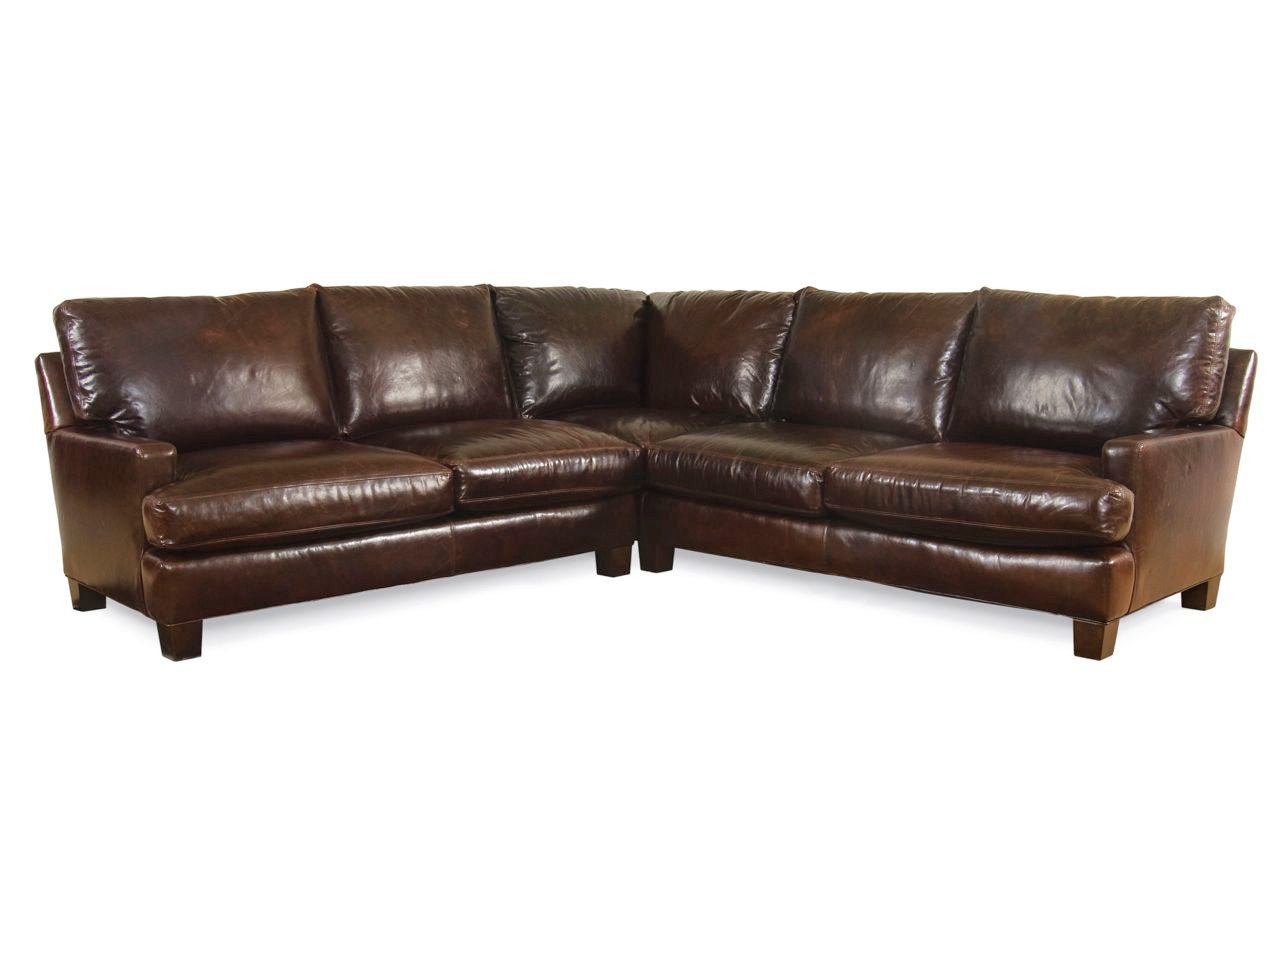 Aiden Leather Sectional Series | Leather Sectionals Sofas ...